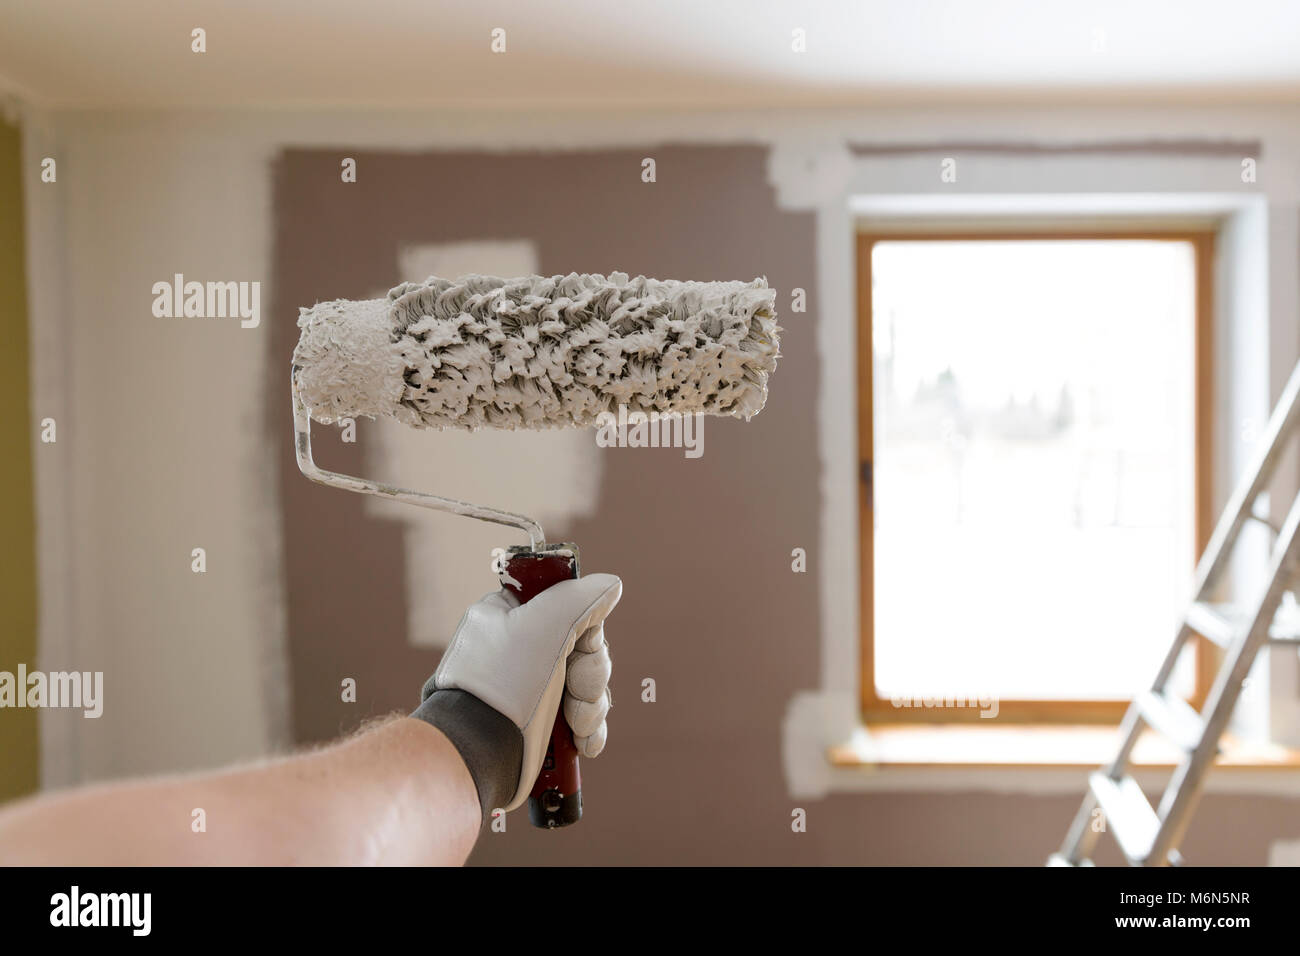 Decoratoru0027s Hand Painting Wall White With Roller